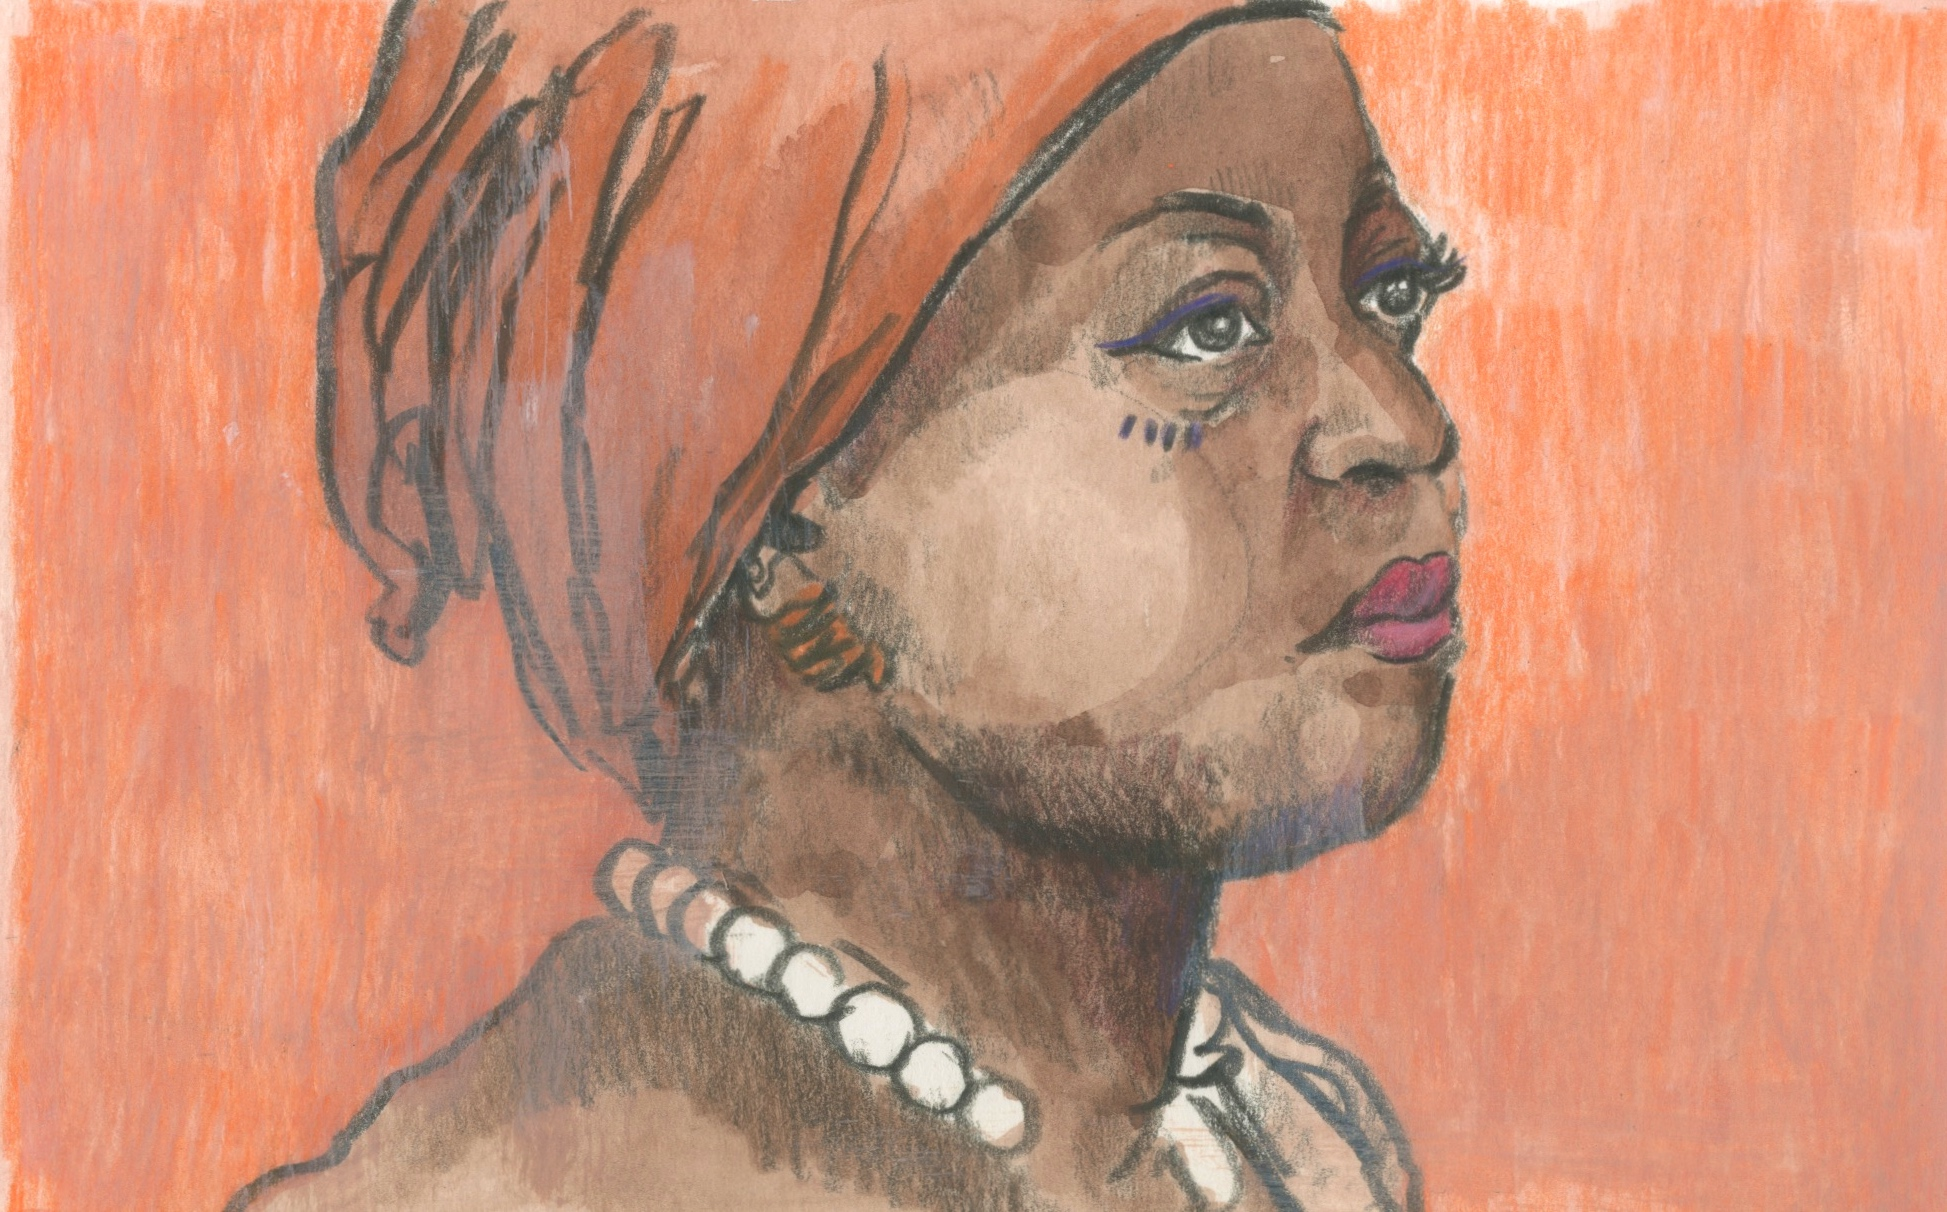 22/09/15 One of Africa's most powerful women has been arrested in London amid allegations that £13 billion is missing from Nigeria's public coffers. Diezani Alison-Madueke was minister in charge of petroleum resources who was replaced when the presidency changed.